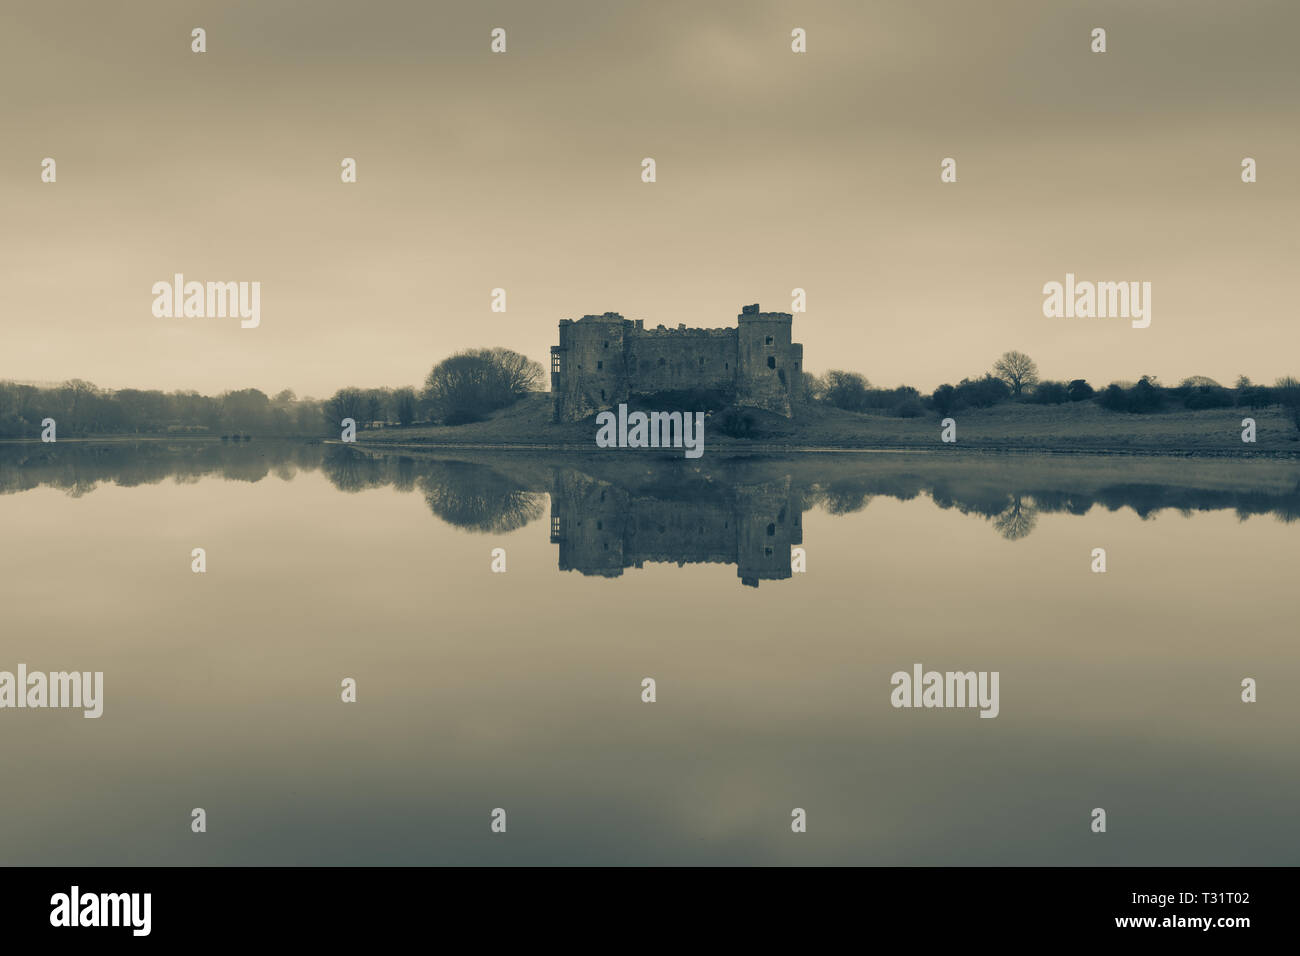 Carew Castle reflecting in the water on a misty morning, Pembrokeshire in sepia tones - Stock Image